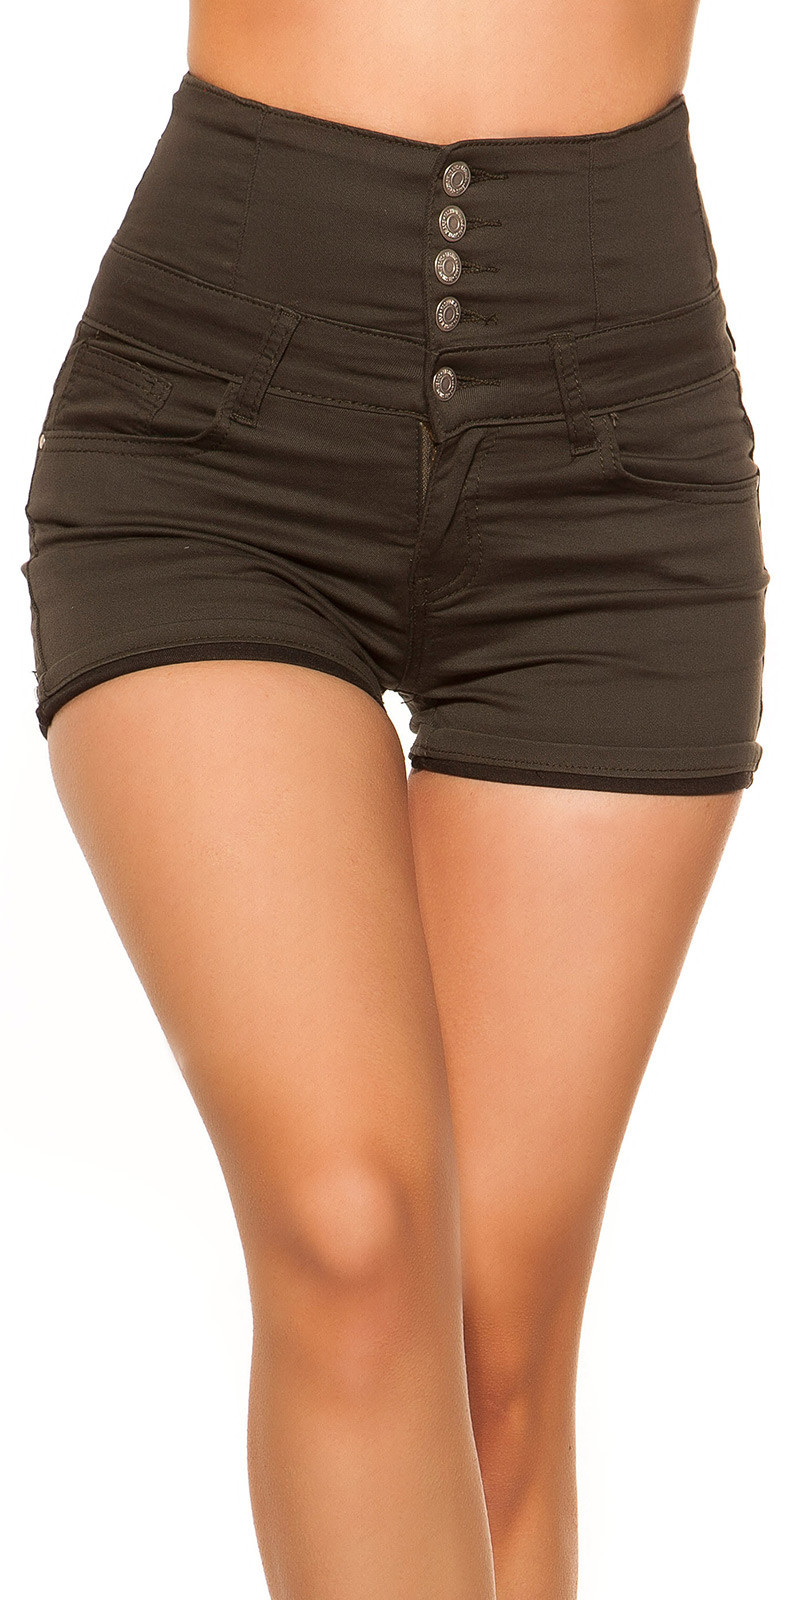 Sexy hoge taille jeans shorts khaki